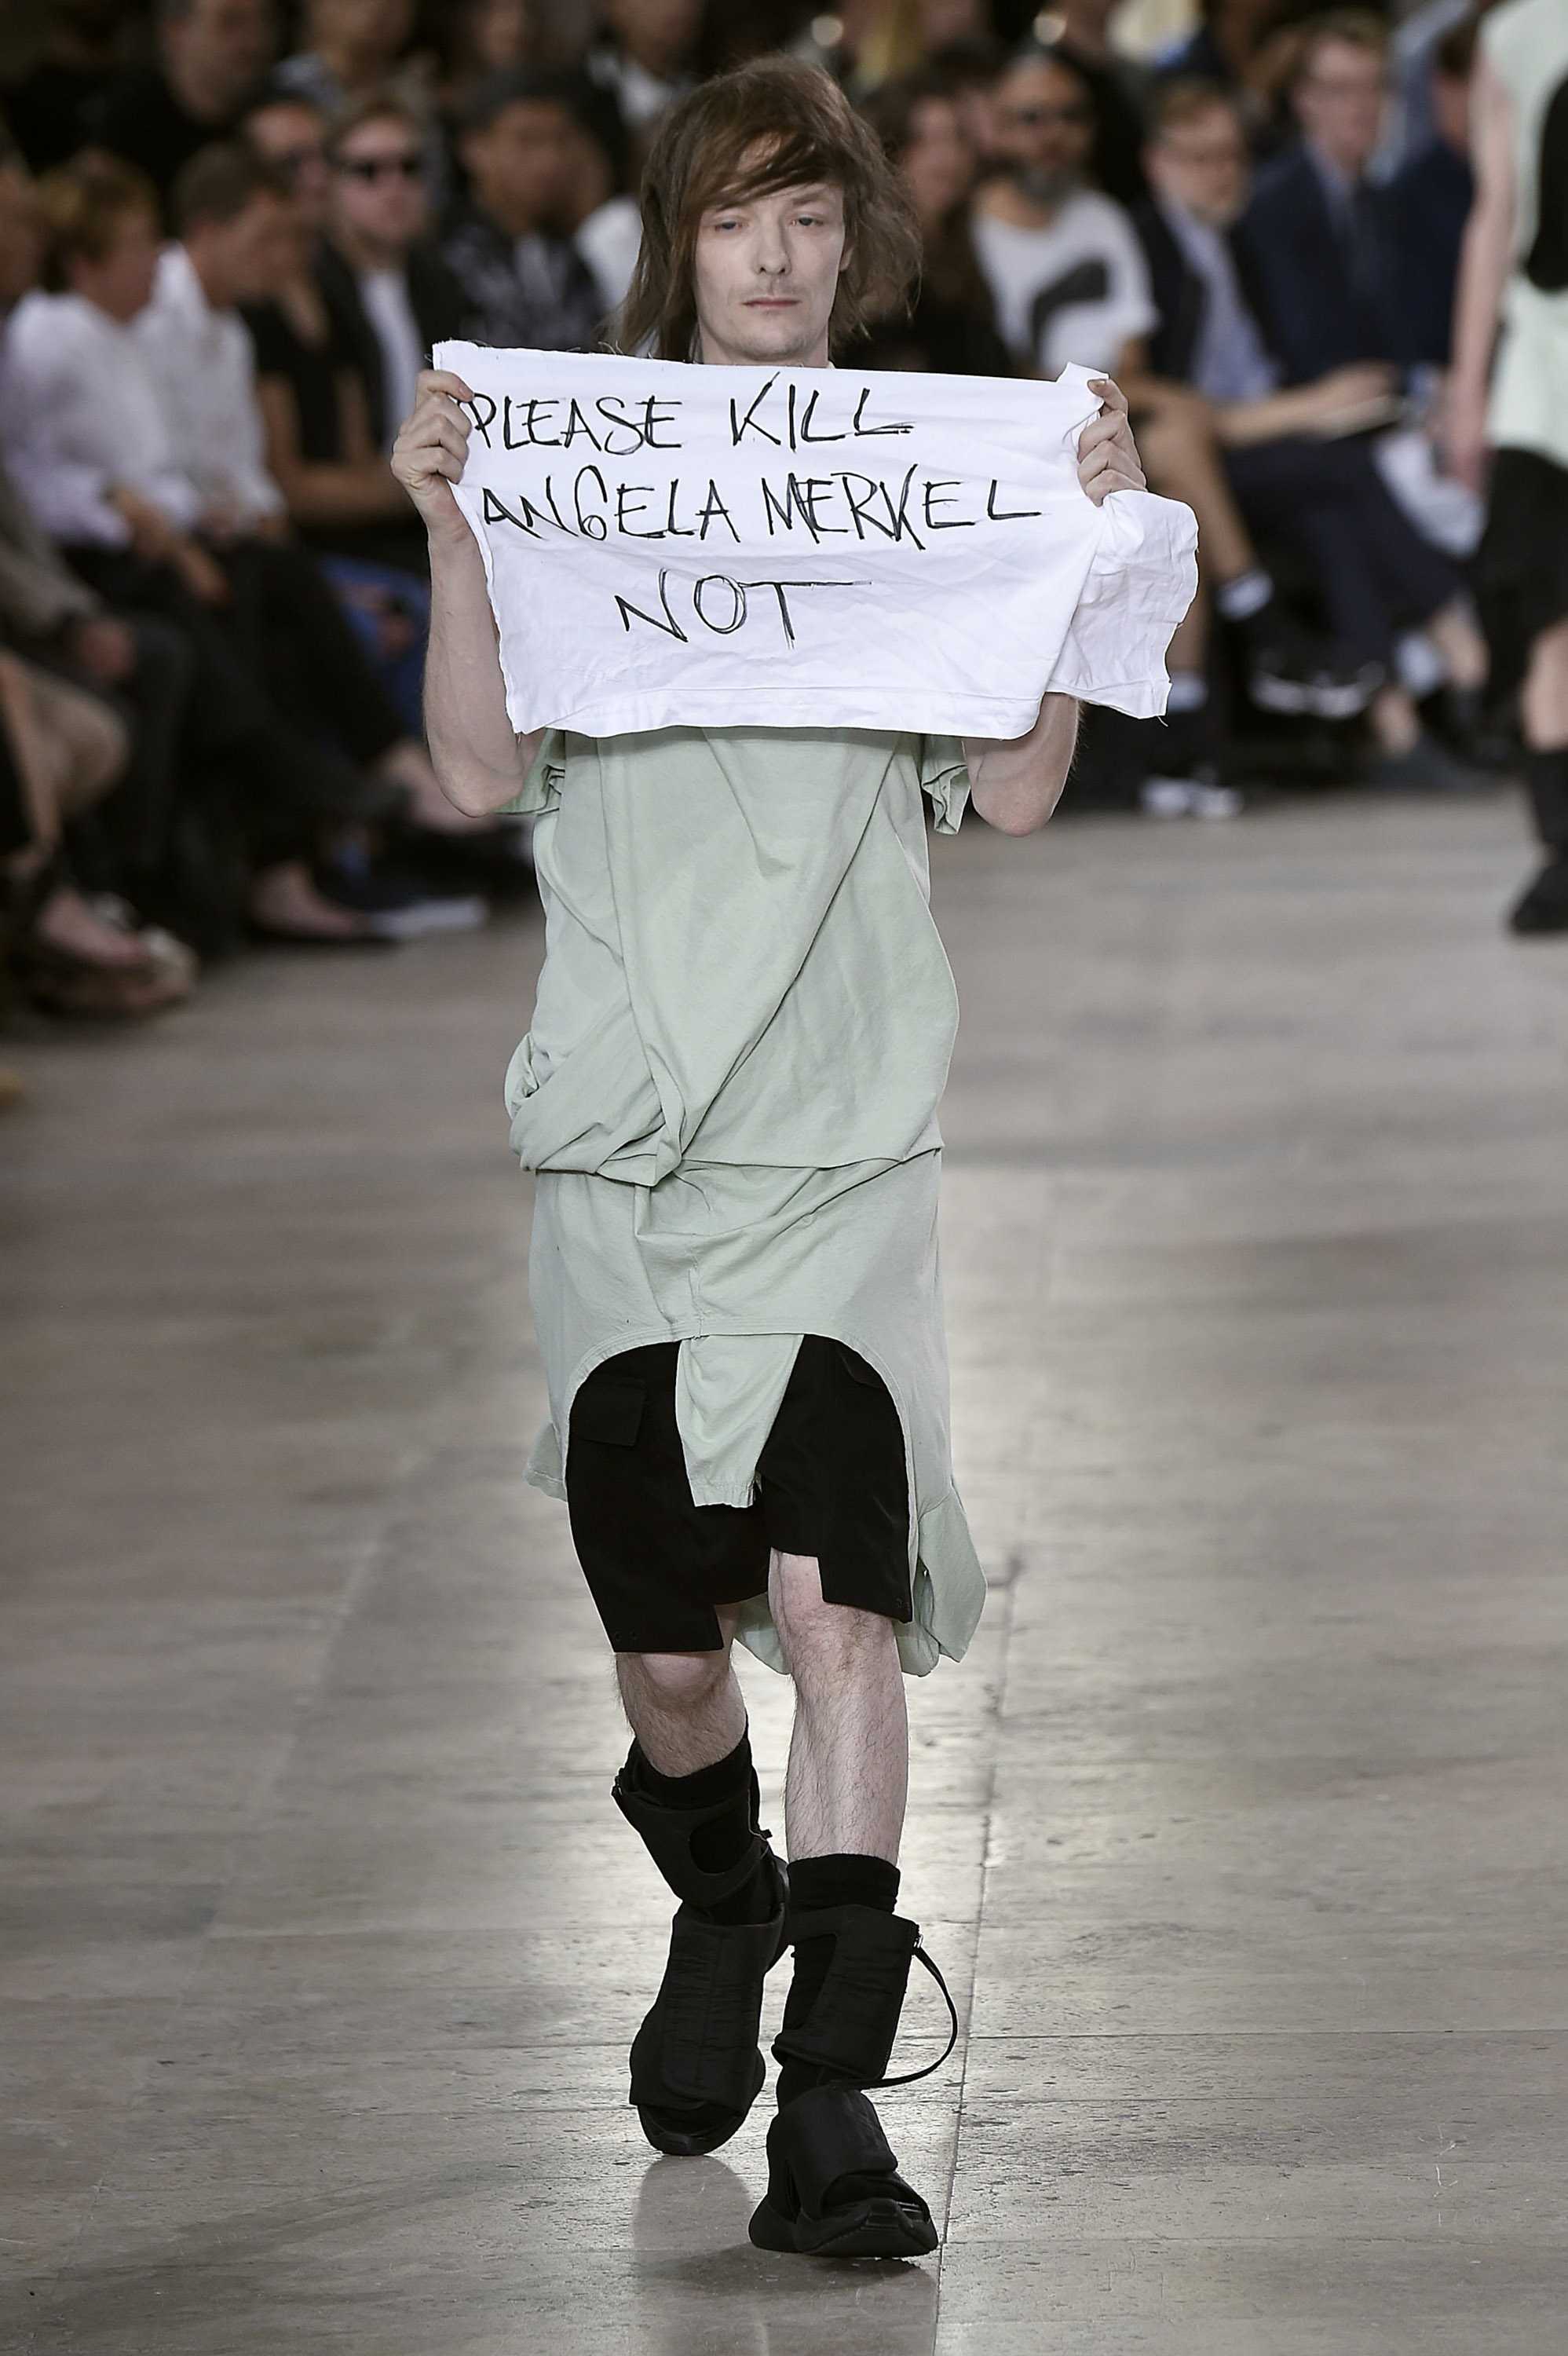 92b4962c94e8 Rick Owens Says He Punched a Model Who Carried a Protest Banner on the  Runway.